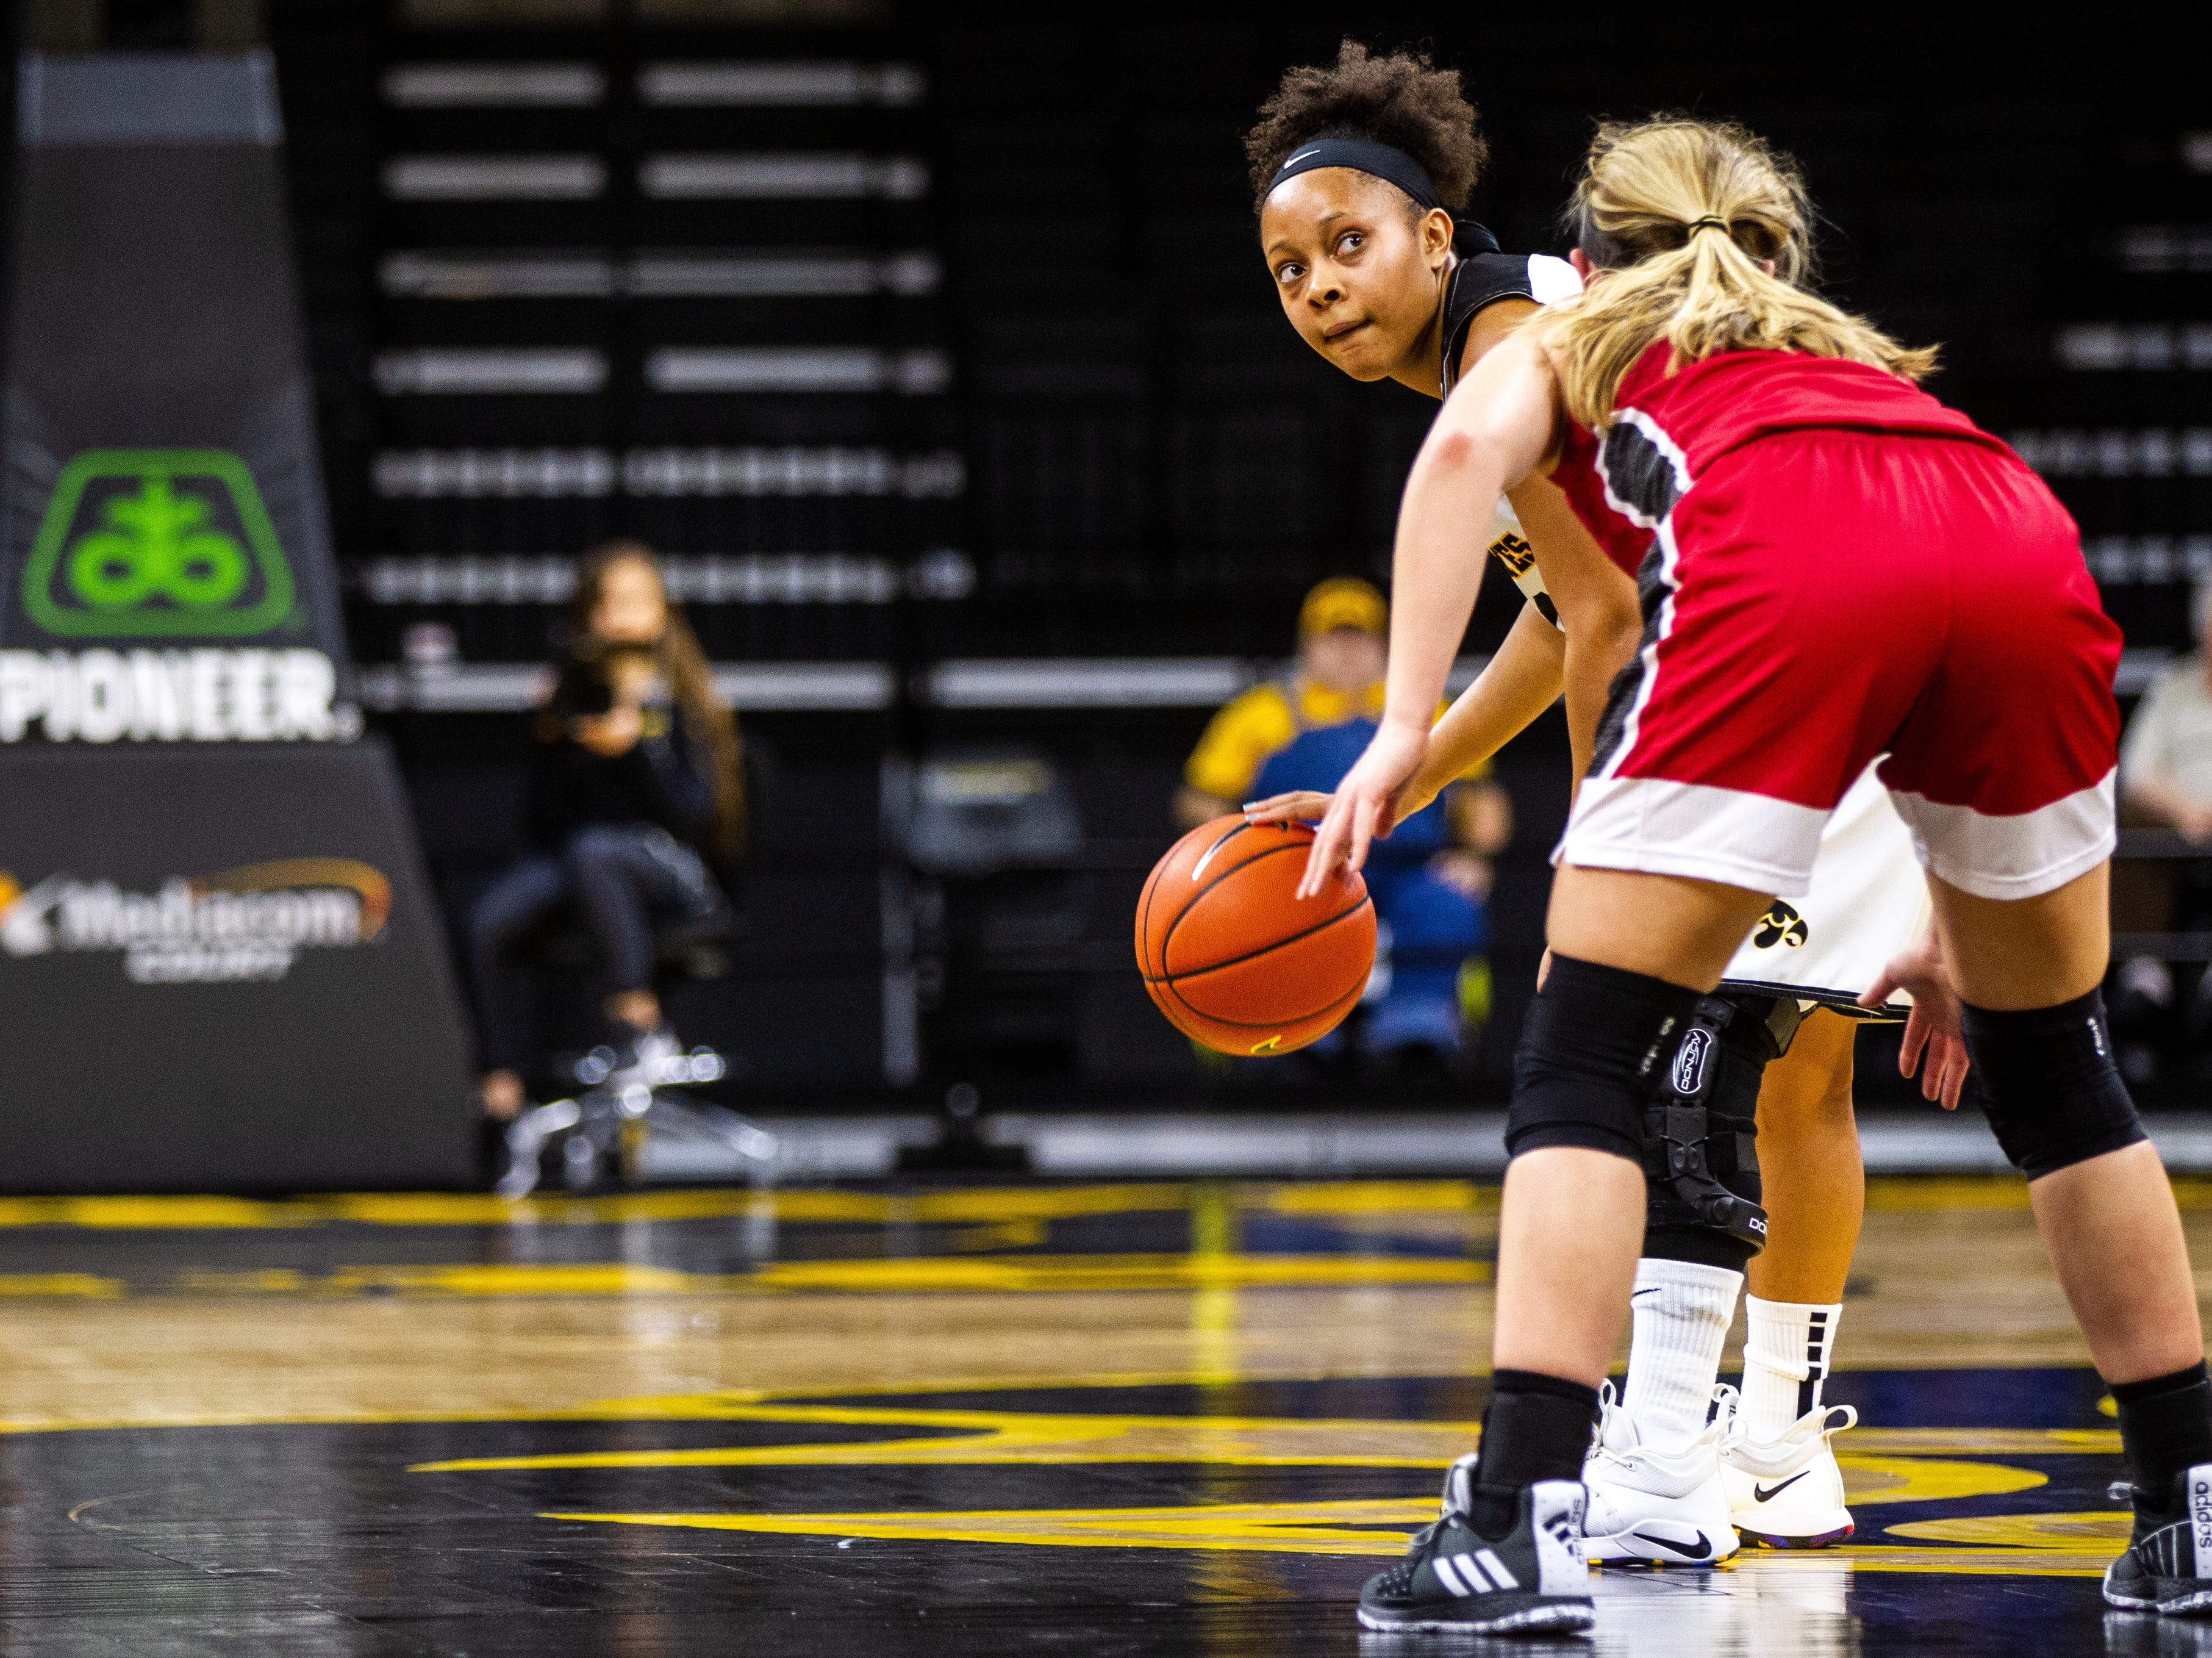 Iowa guard Tania Davis (11) watches as the shot clock winds down during a NCAA women's basketball game on Saturday, Dec. 8, 2018, at Carver-Hawkeye Arena in Iowa City.